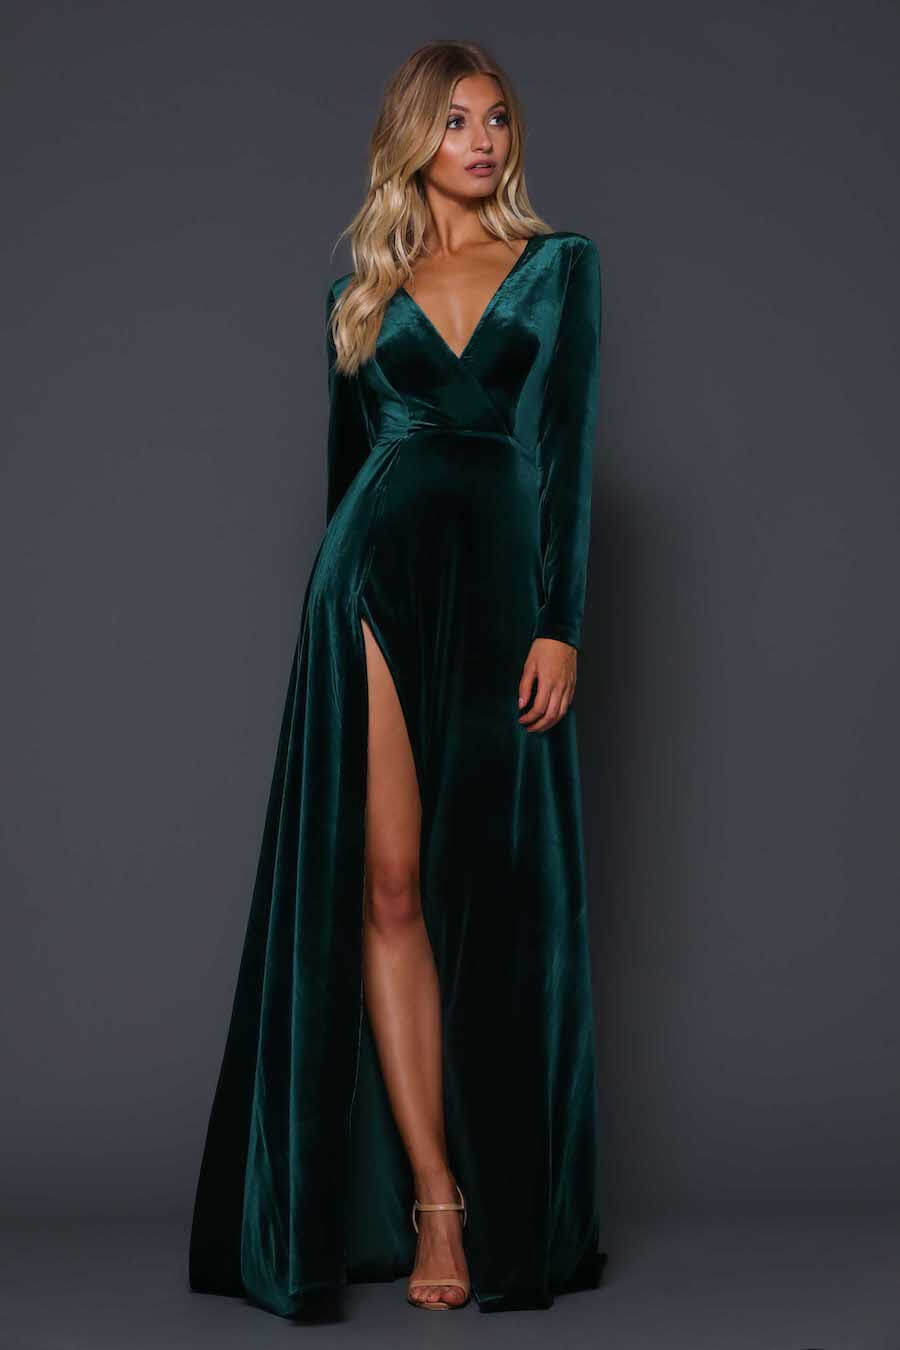 Plunging neckline velvet fitted dress with long sleeves and high split